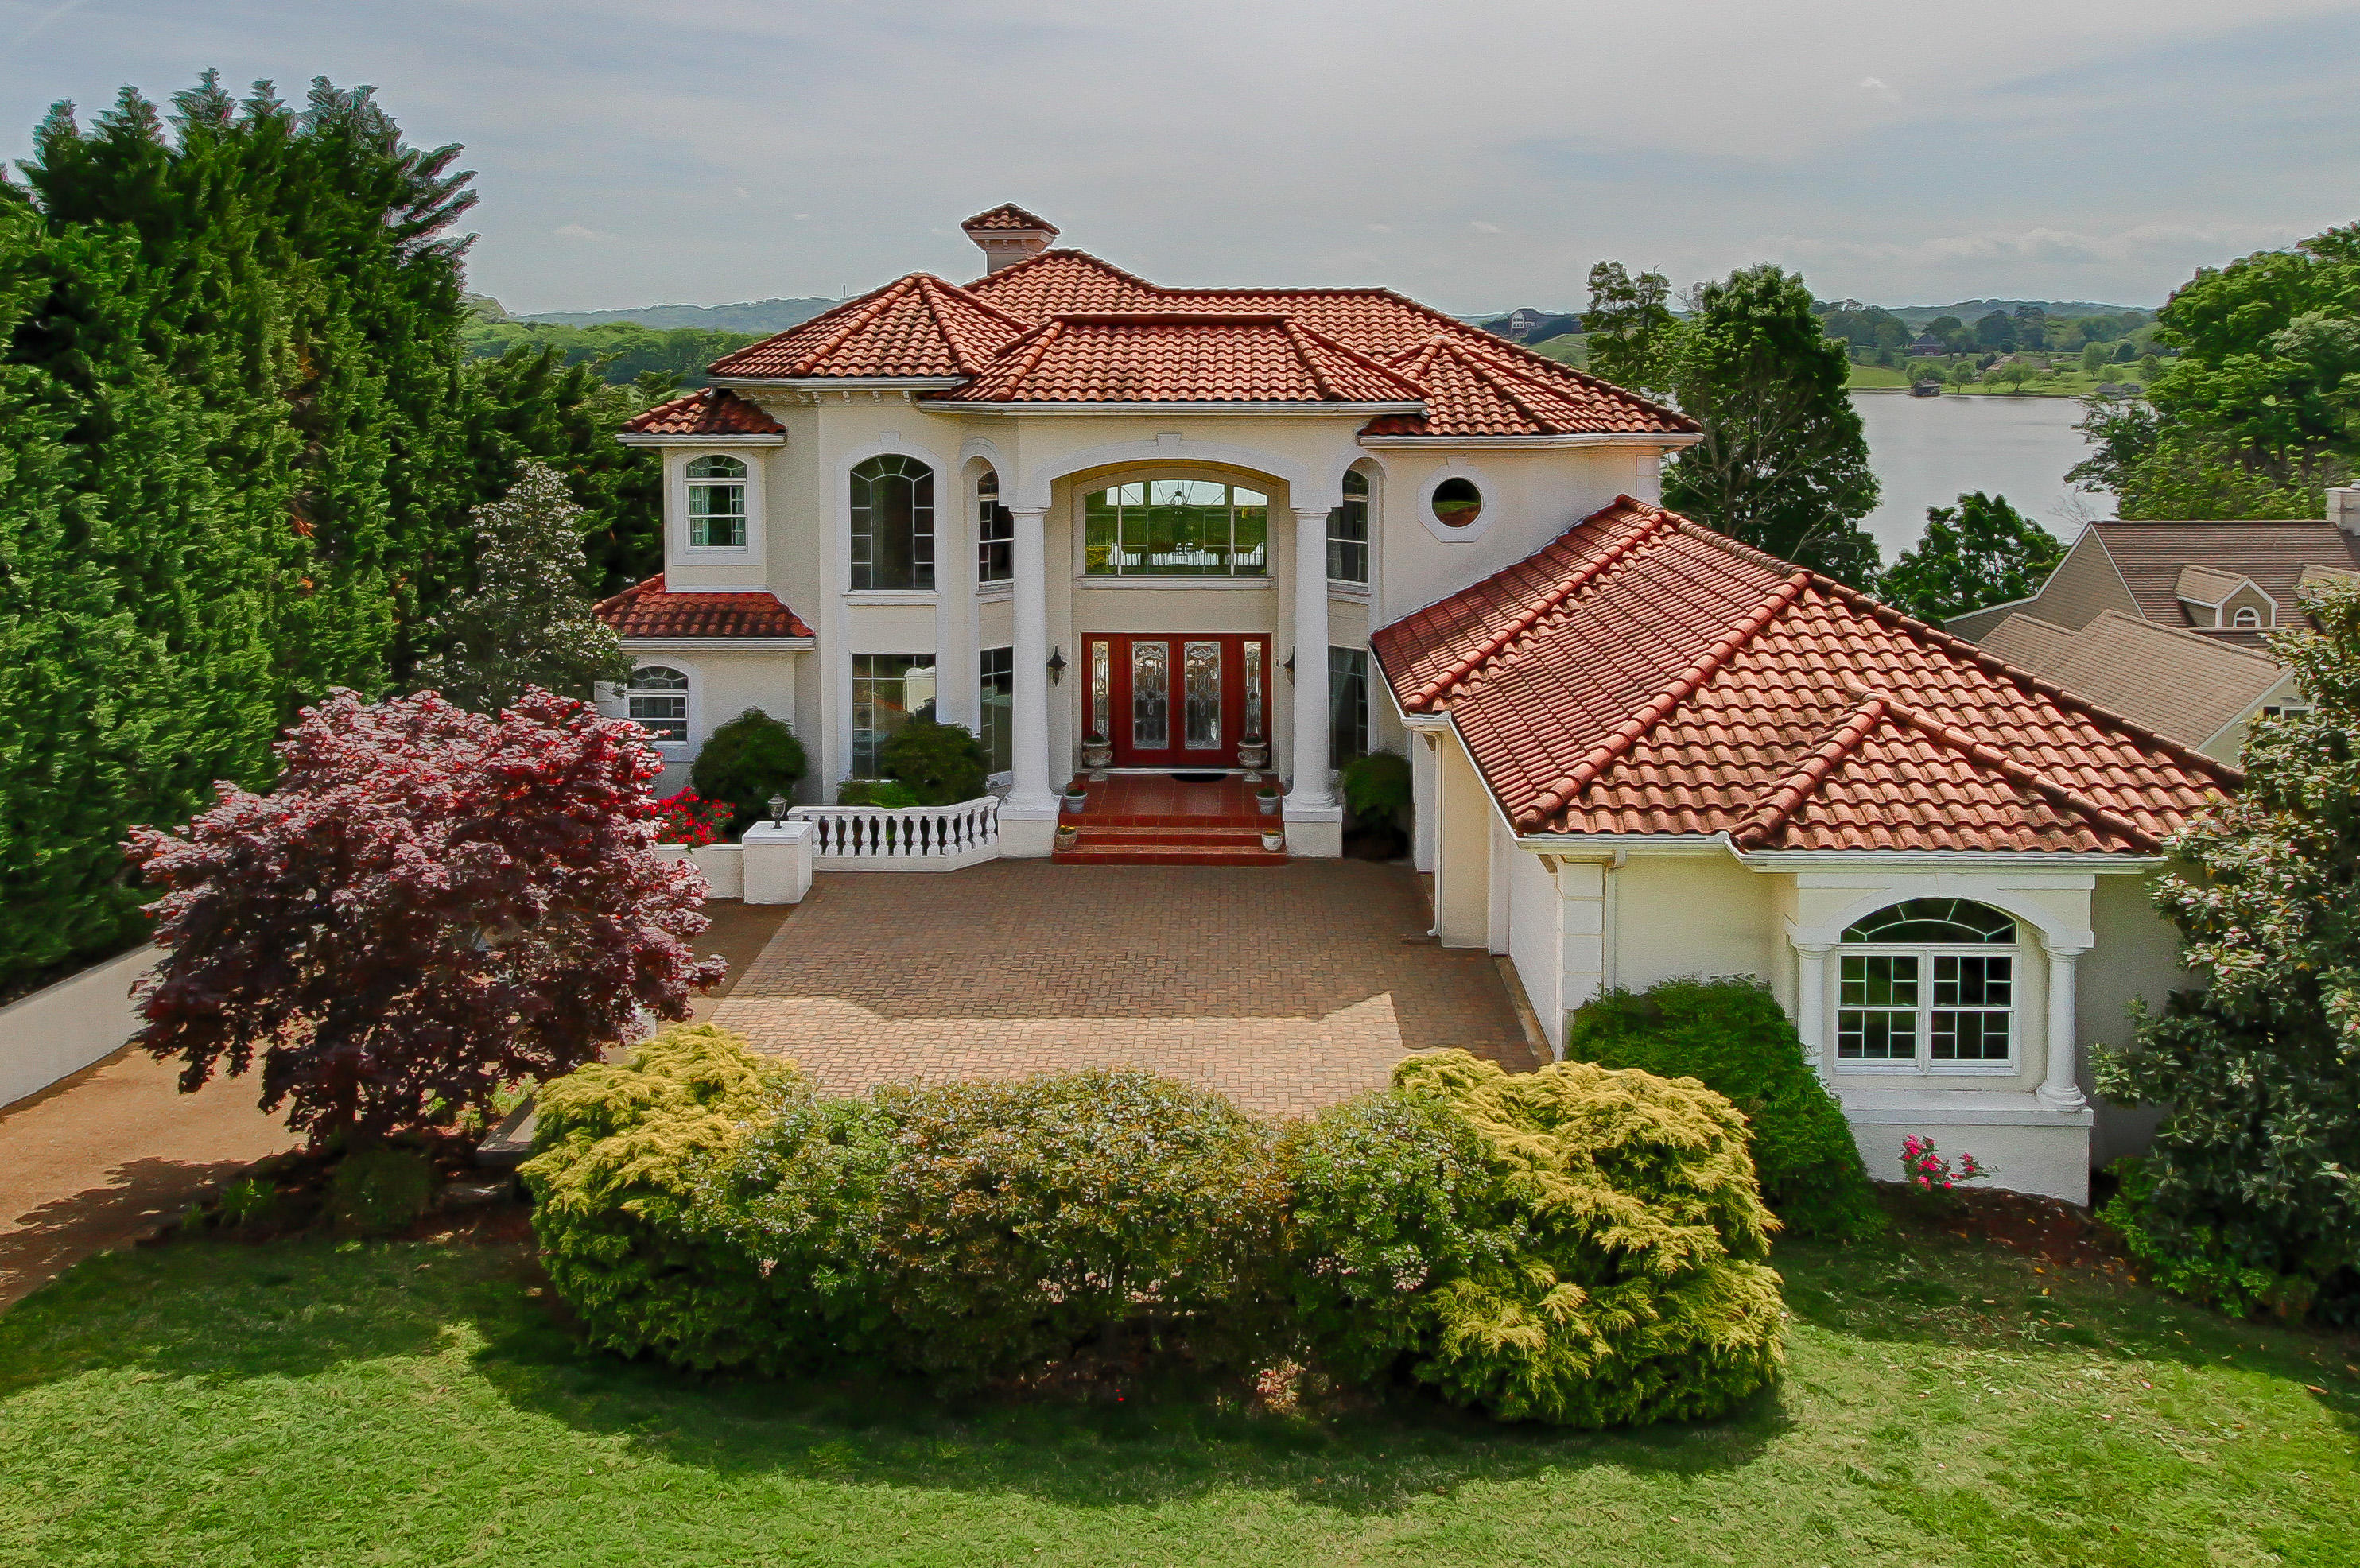 Search Maryville Lakefront Homes in the Foothills of the Great Smoky